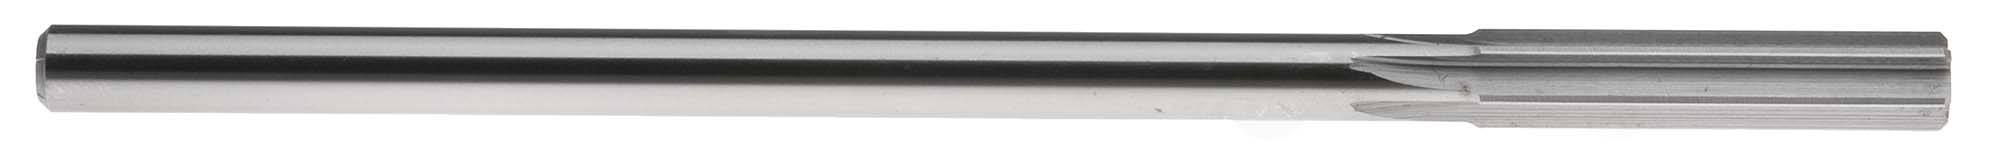 "M (.295"") Straight Shank Chucking Reamer, Straight Flute, High Speed Steel"